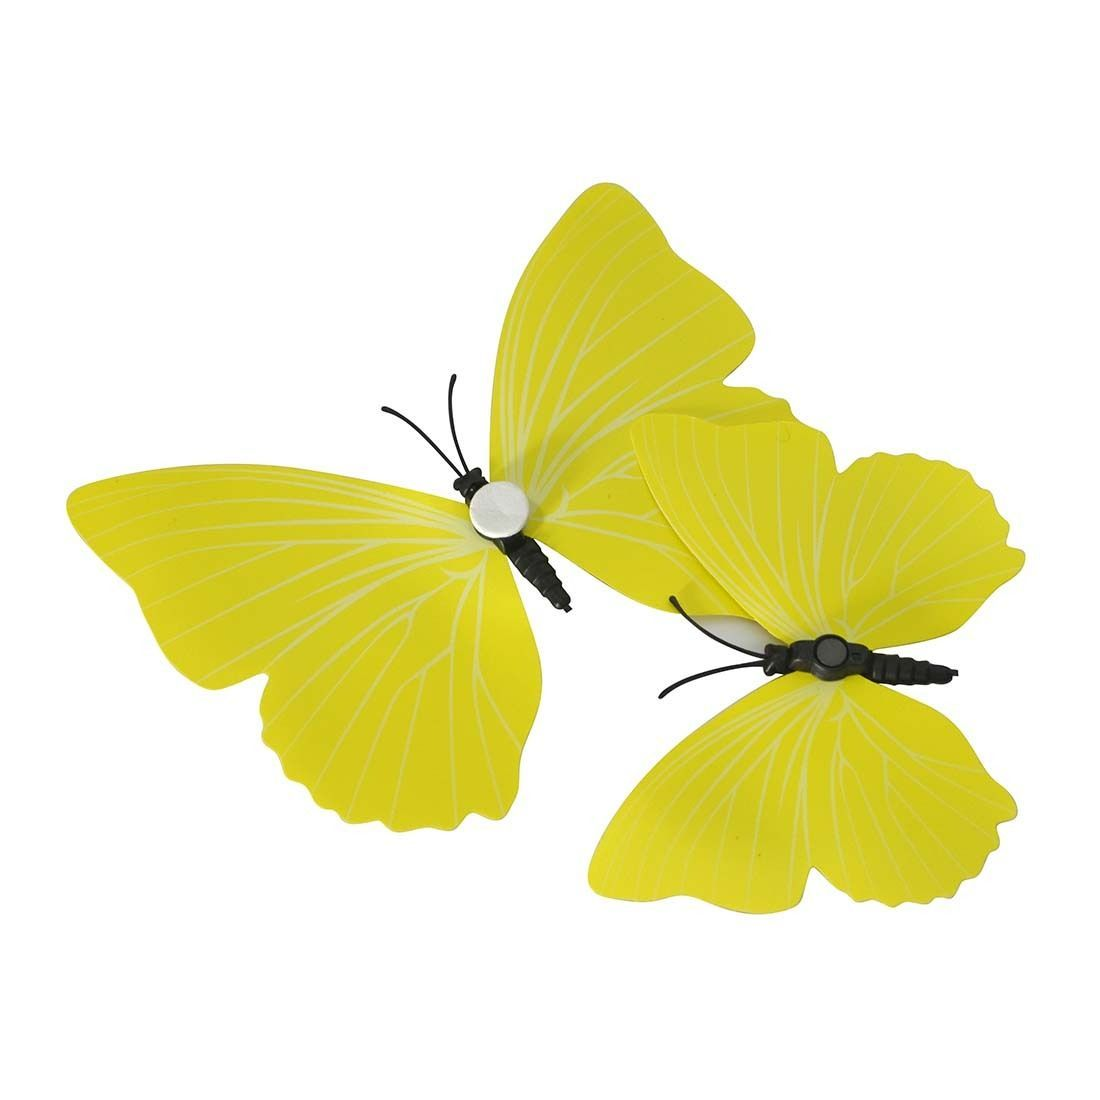 Famous Diy Butterfly Wall Art Illustration - All About Wallart ...